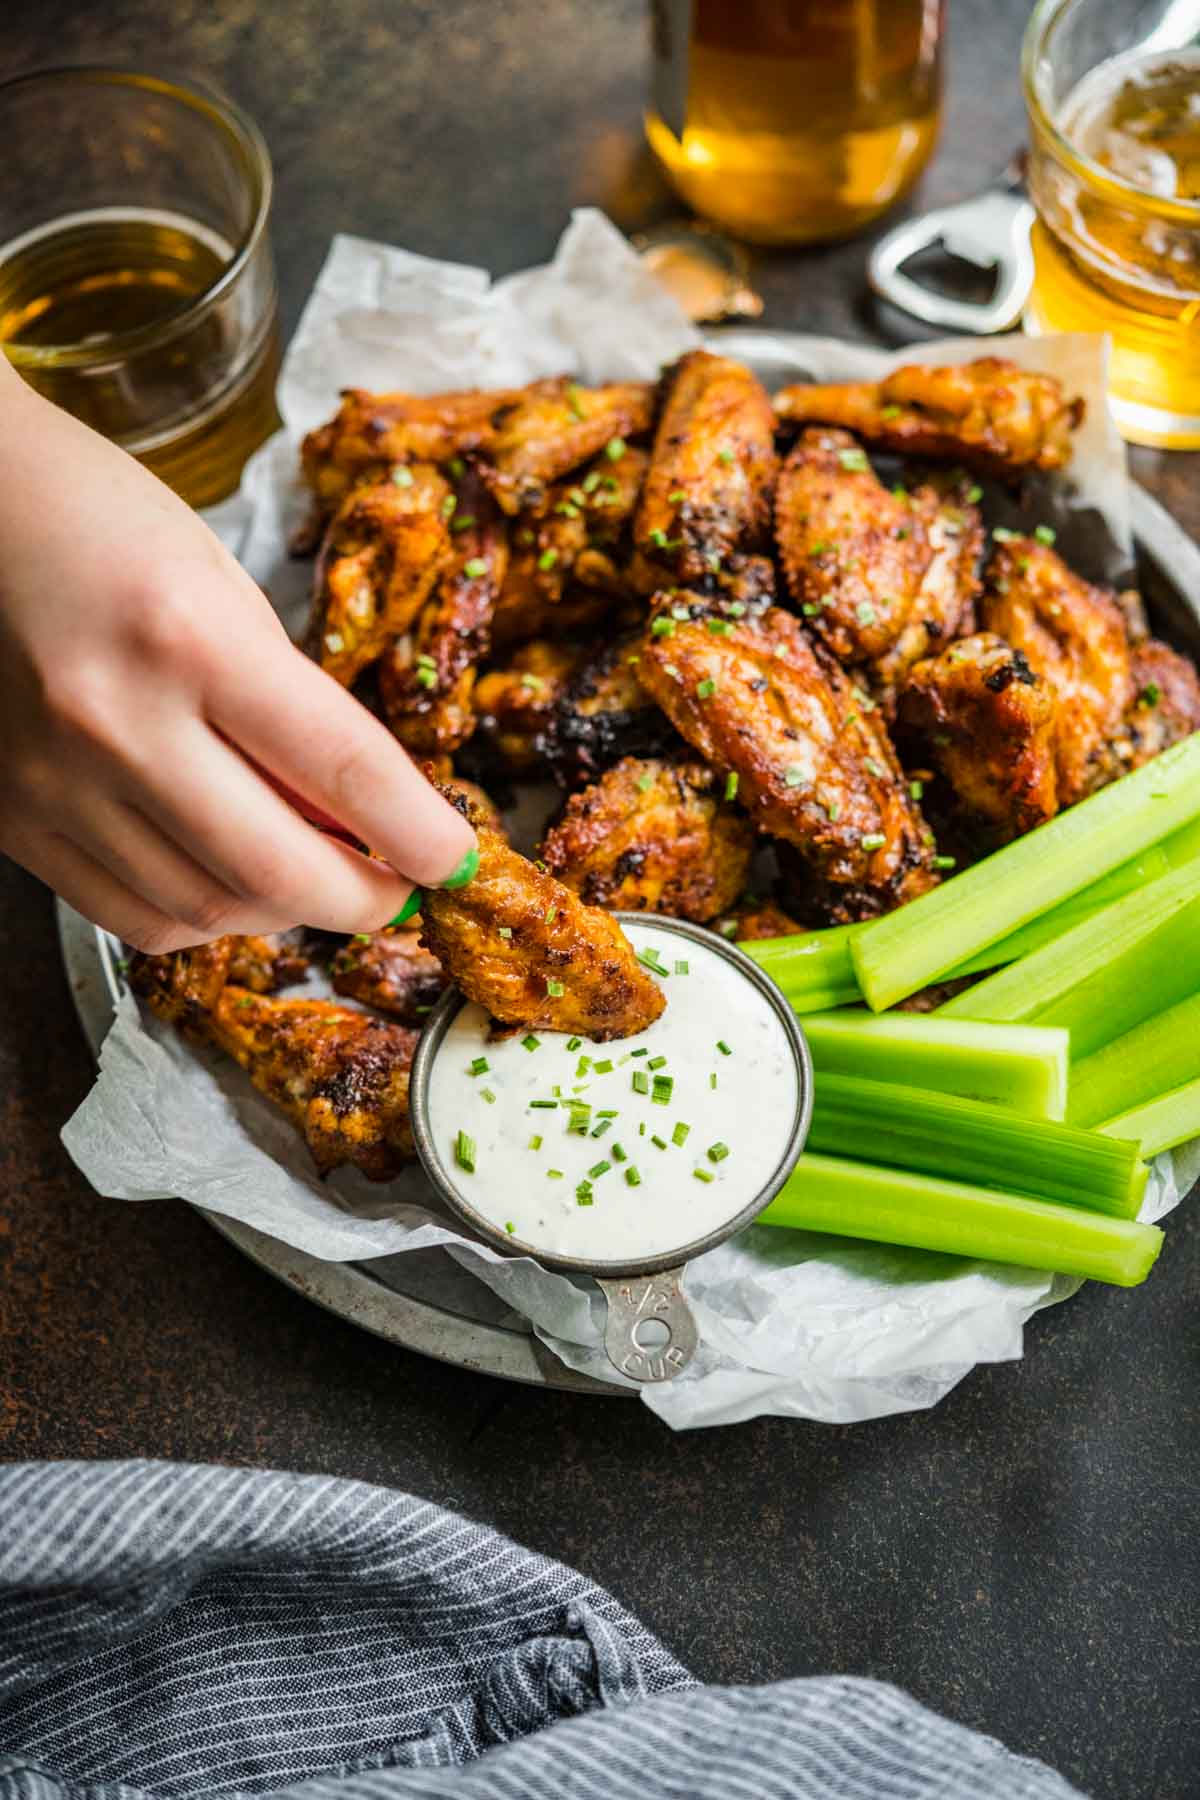 Baked Chicken Wings on serving plate with celery and hand dipping wing in creamy dip